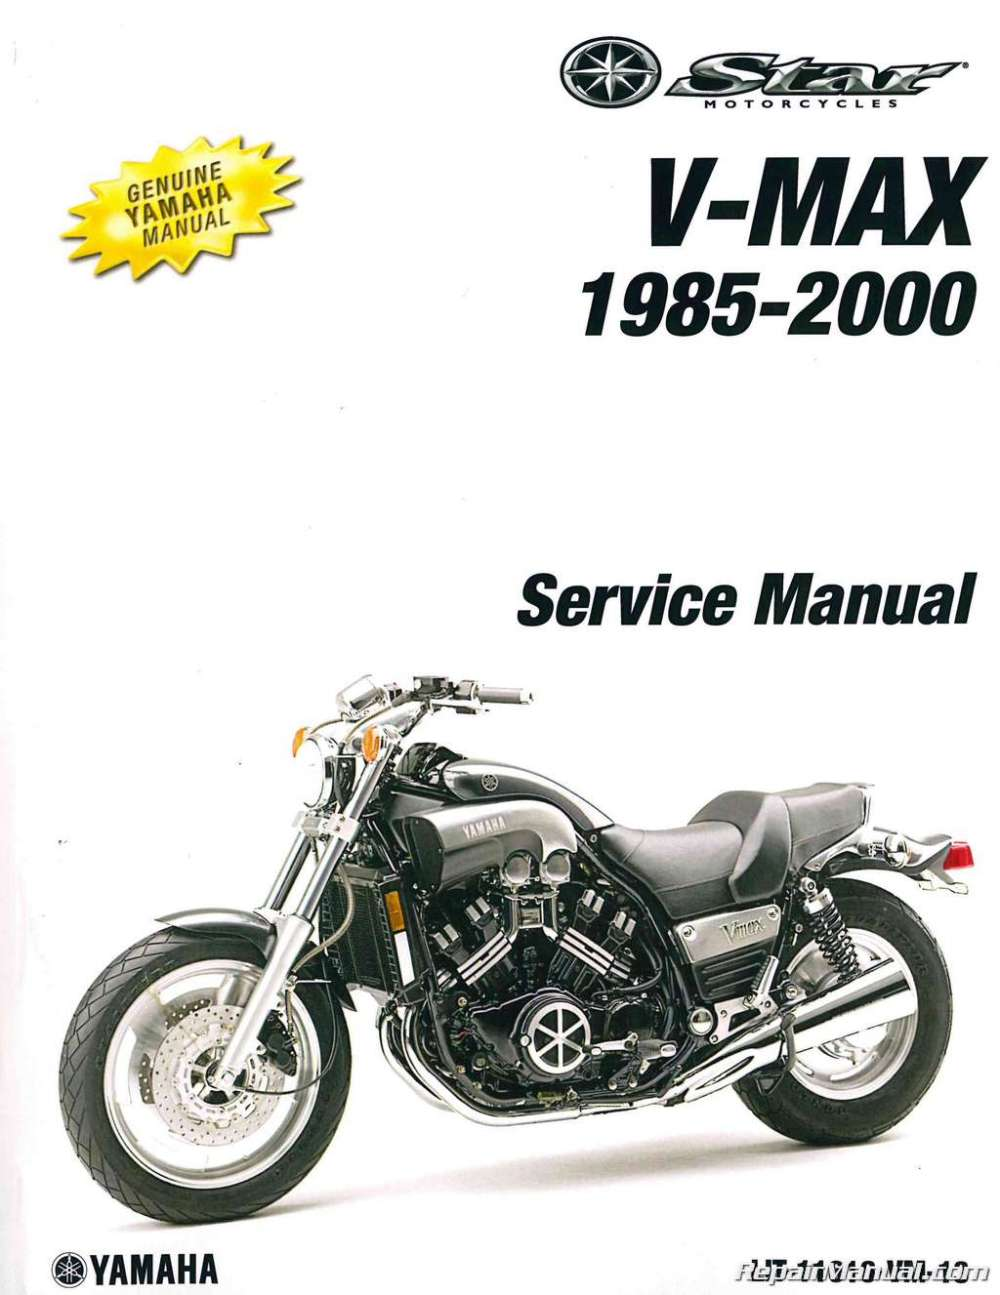 medium resolution of yamaha vmax wiring diagram 1985 2000 yamaha vmx1200 vmax motorcycle service manual1985 2000 yamaha vmx1200 vmax